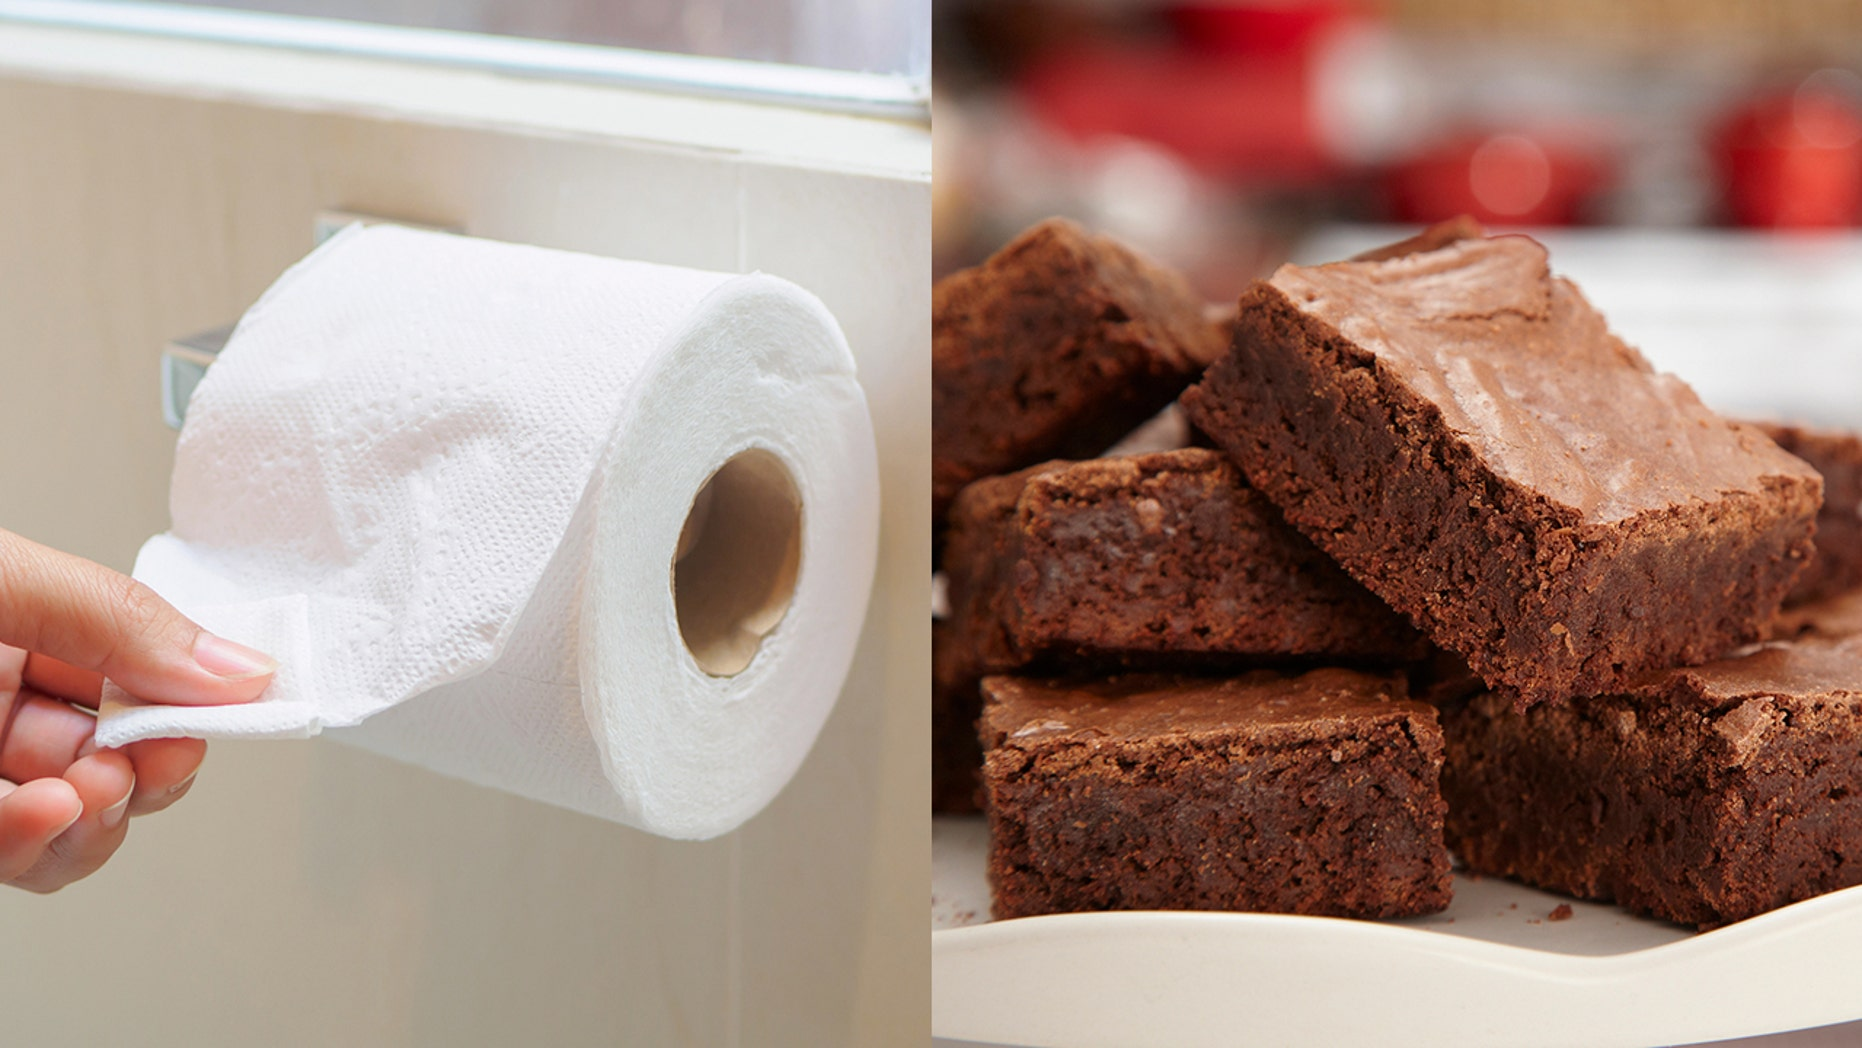 The employee wasn't charged with any crimes, though police say she could have been if she hadn't fessed up before co-workers ate the brownies.